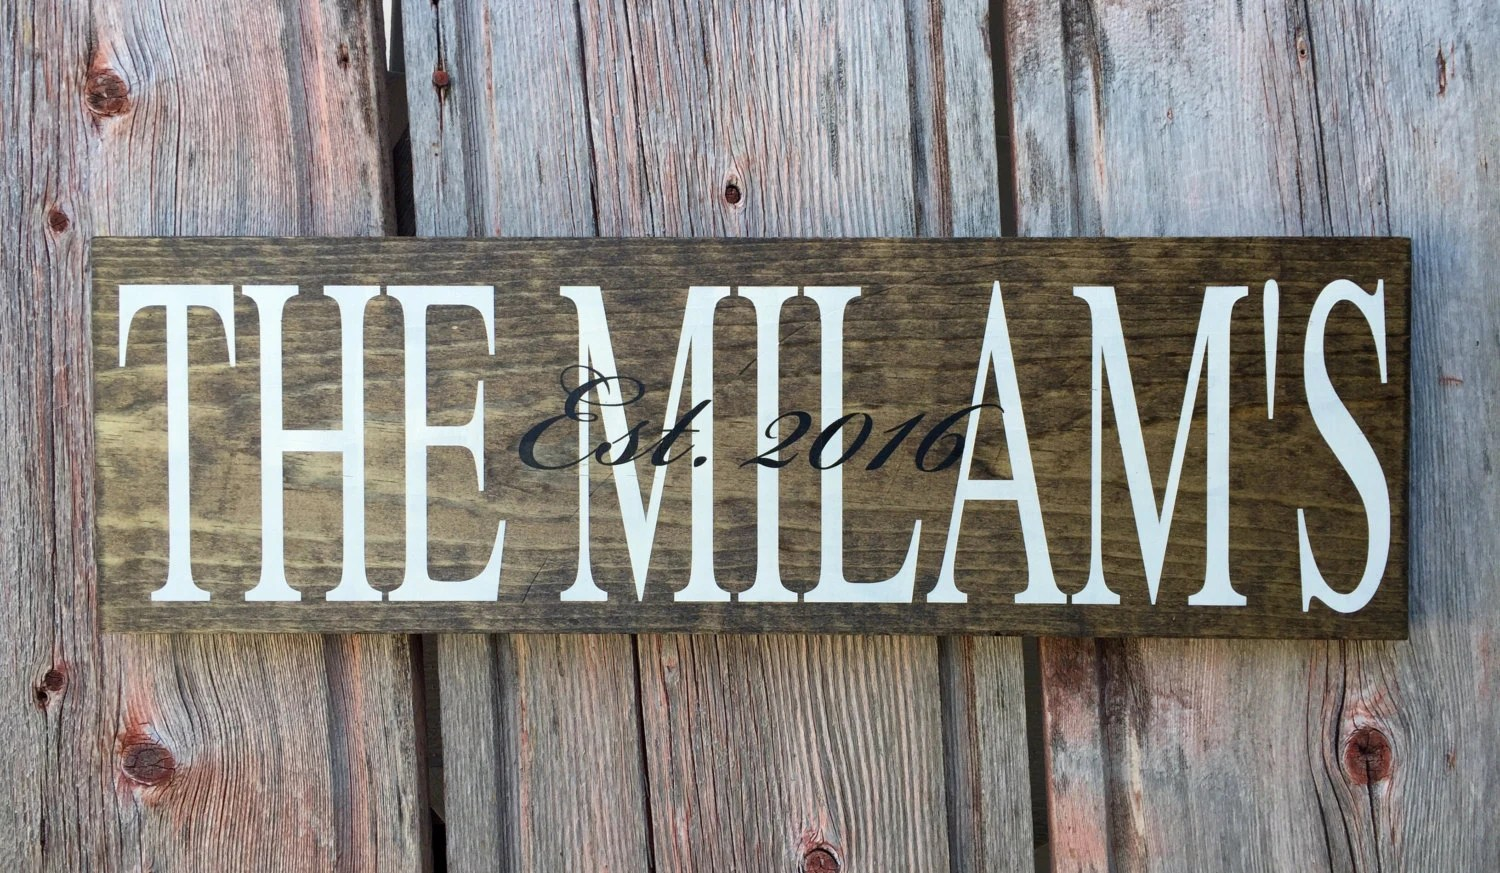 Personalized Last Name Sign Signs Home Wall Decor Home on Home Wall Decor Signs id=86366